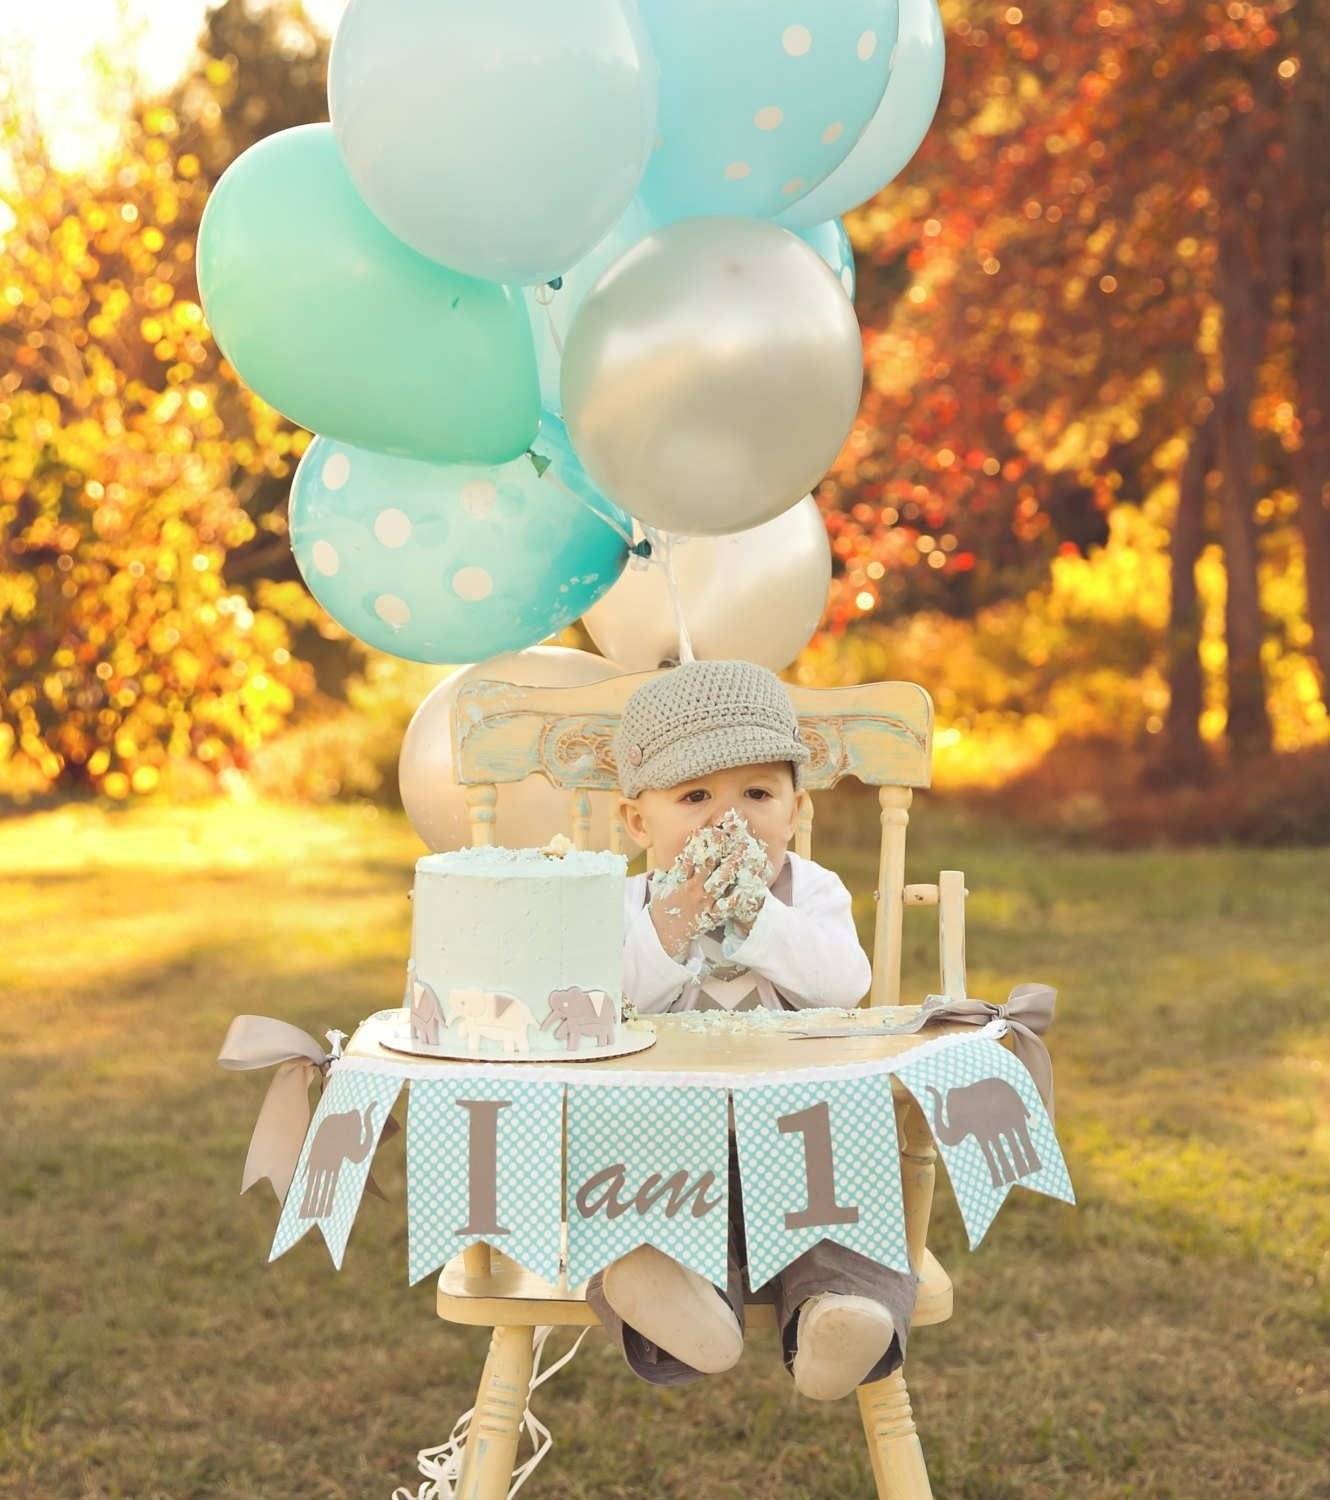 10 Most Popular Cheap 1St Birthday Party Ideas 10 1st birthday party ideas for boys part 2 aniversario imagens 2020